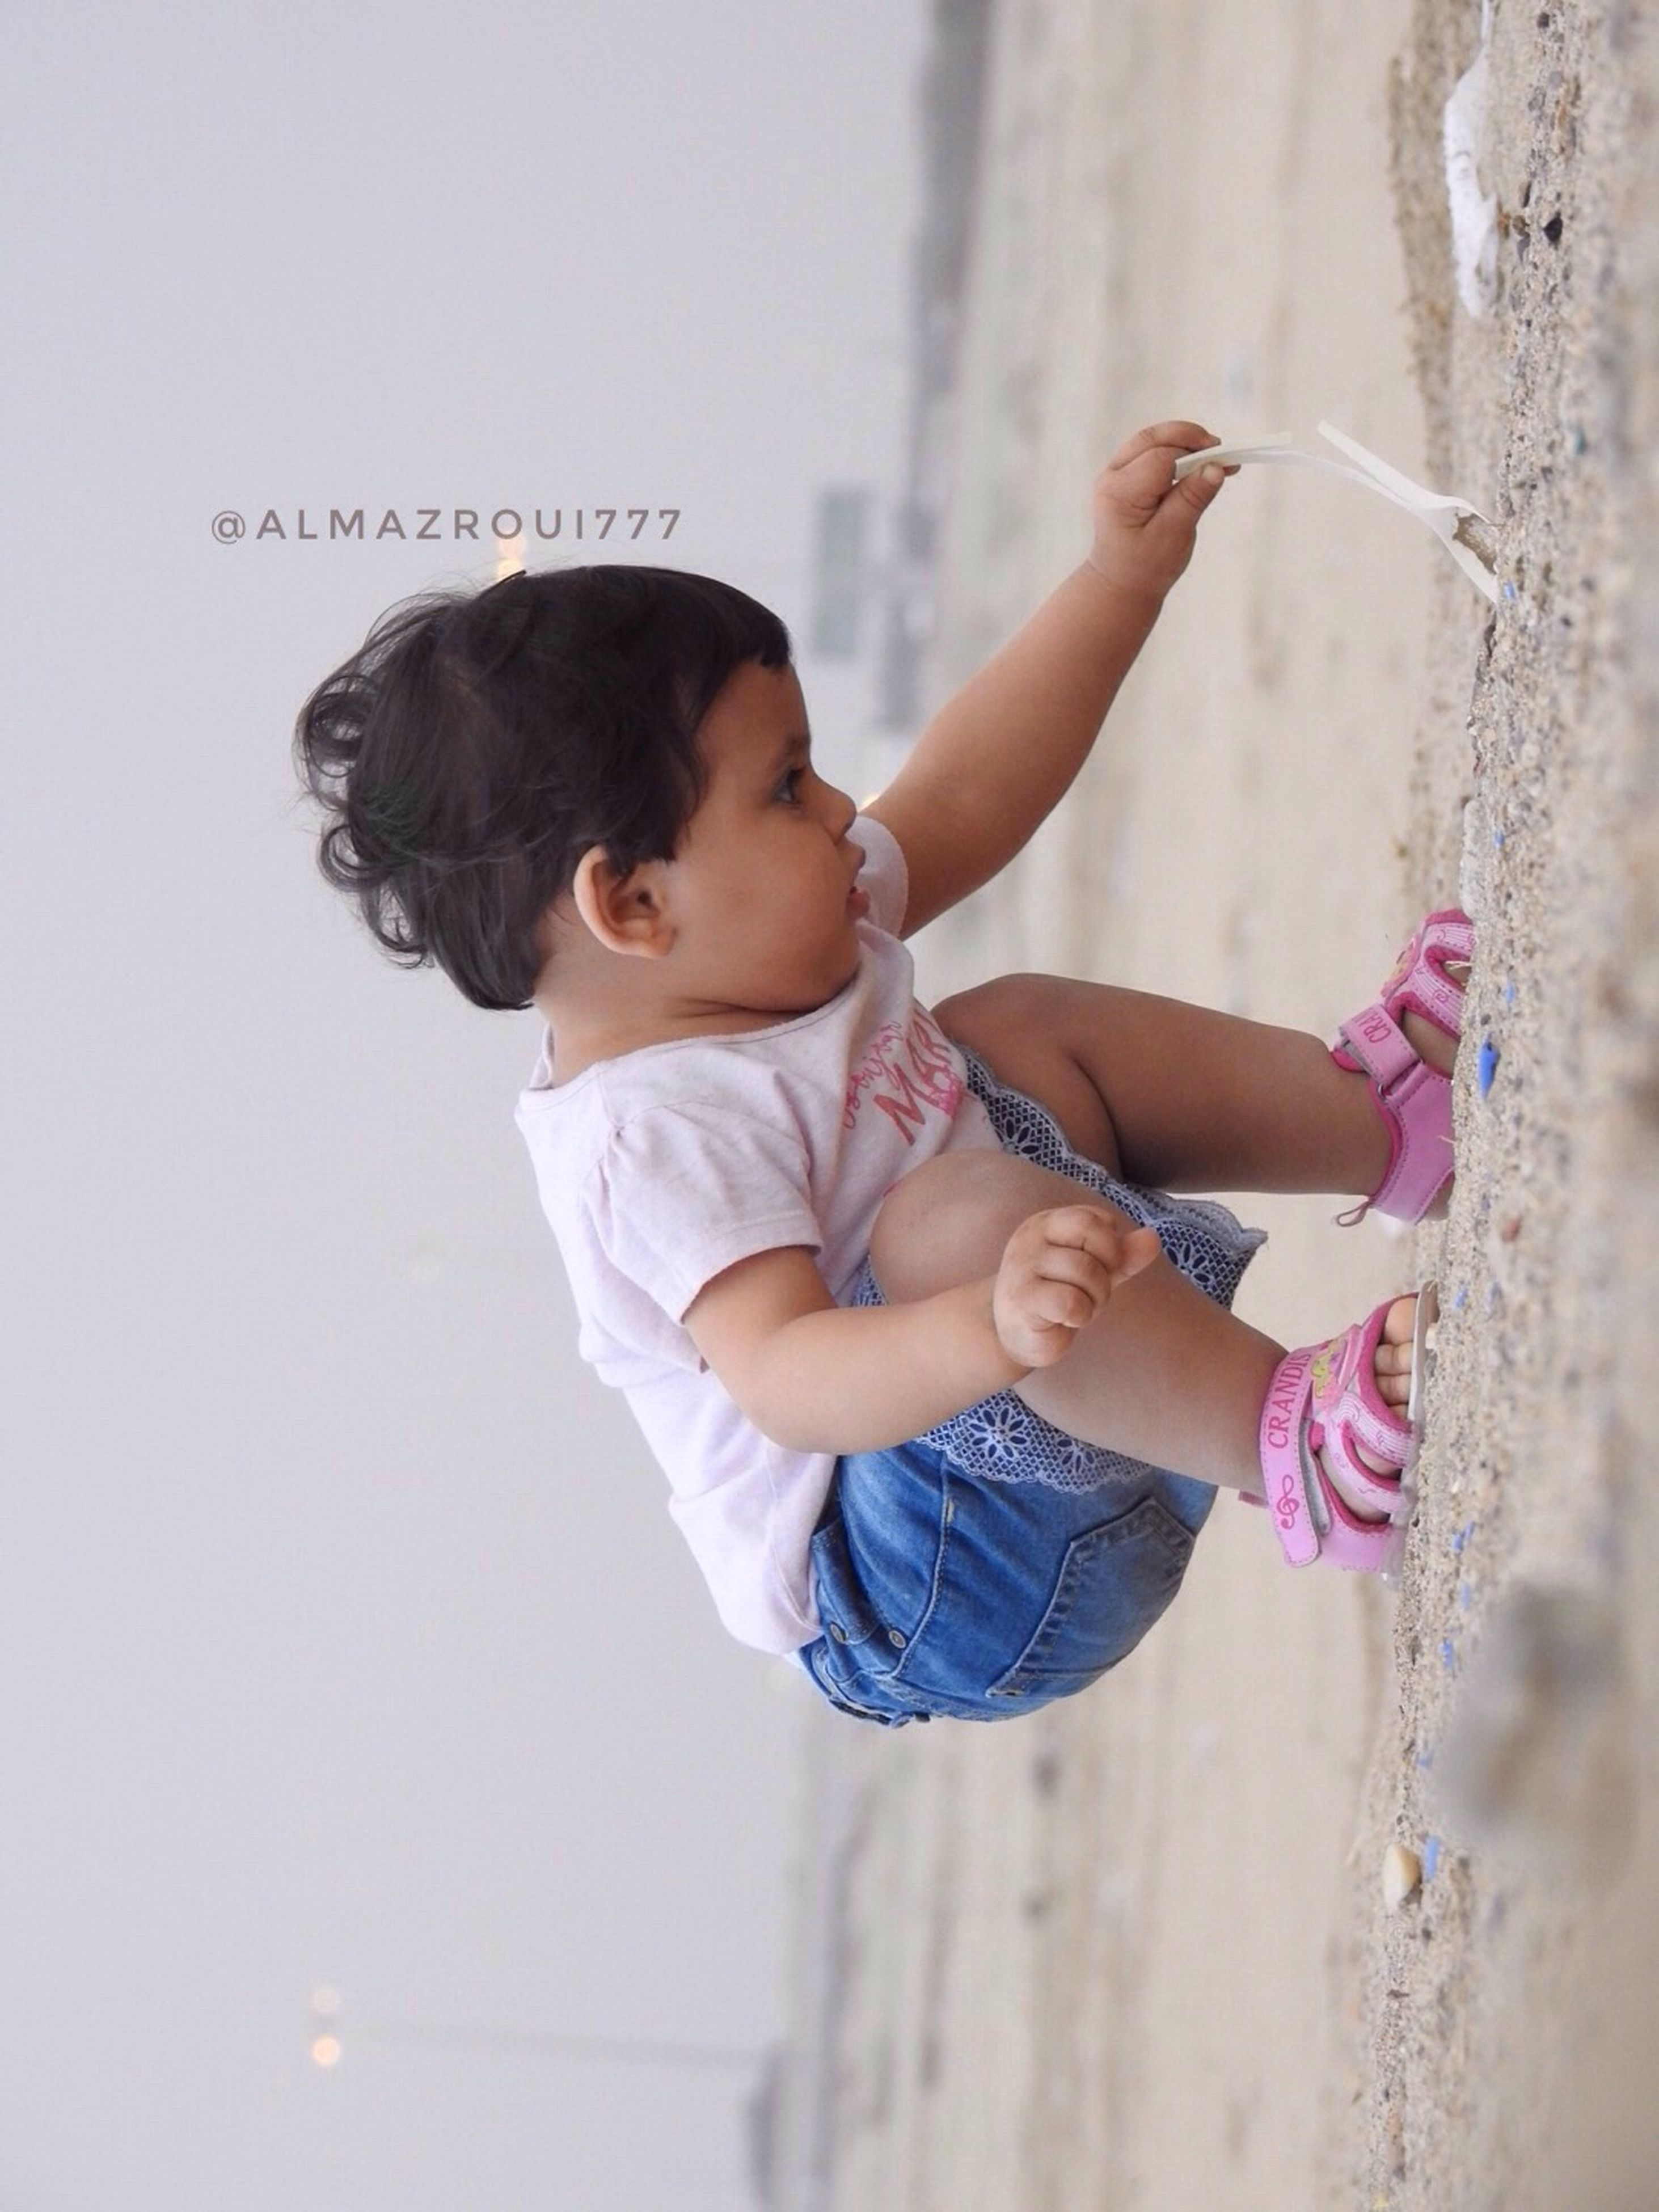 one person, baby, childhood, real people, babyhood, lifestyles, full length, climbing, day, outdoors, people